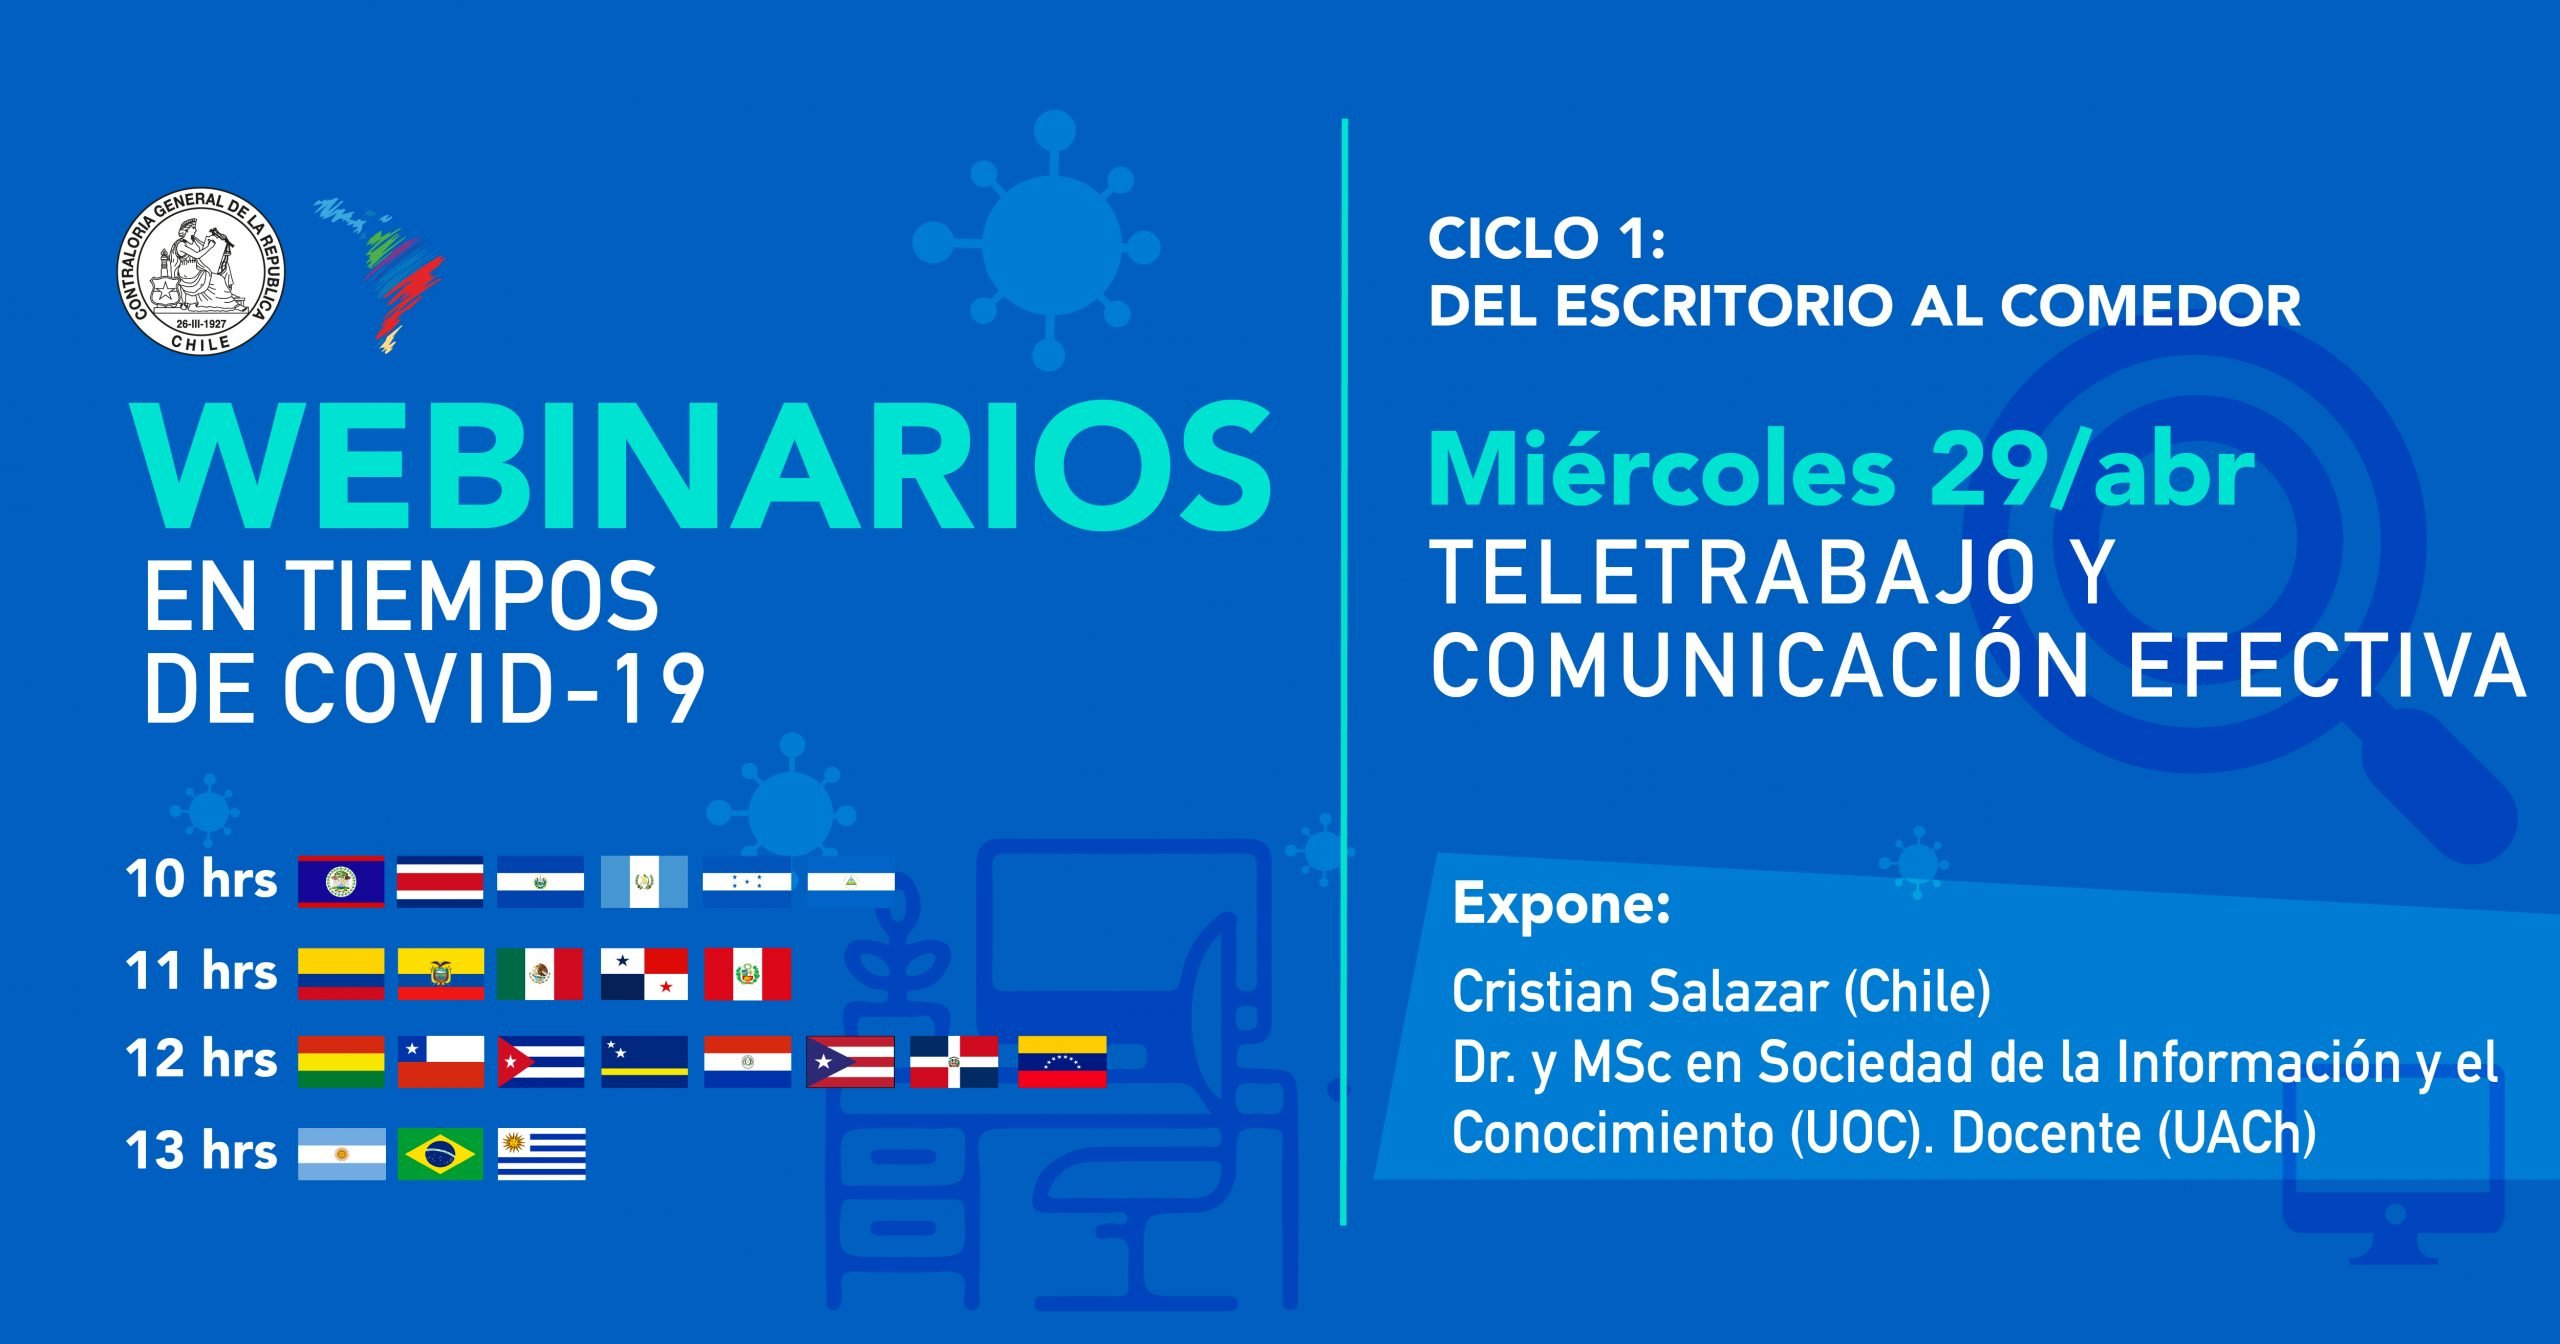 They will host a webinar on digital citizenship in Bolivia